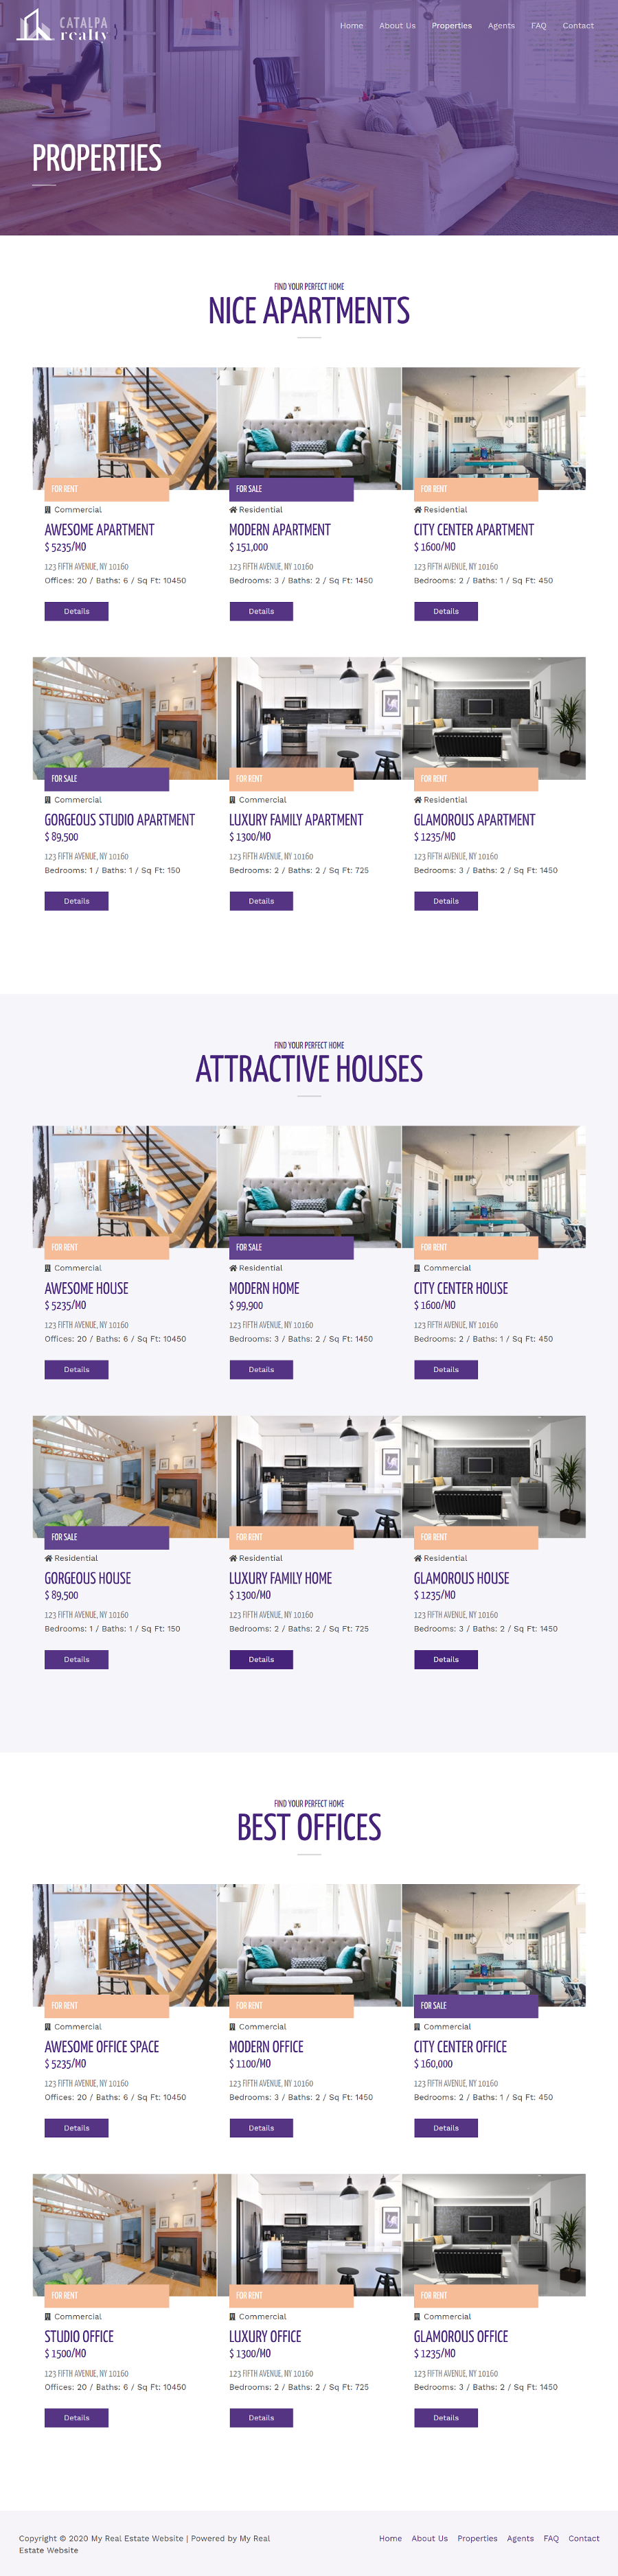 Real-Estate-Properties-Page